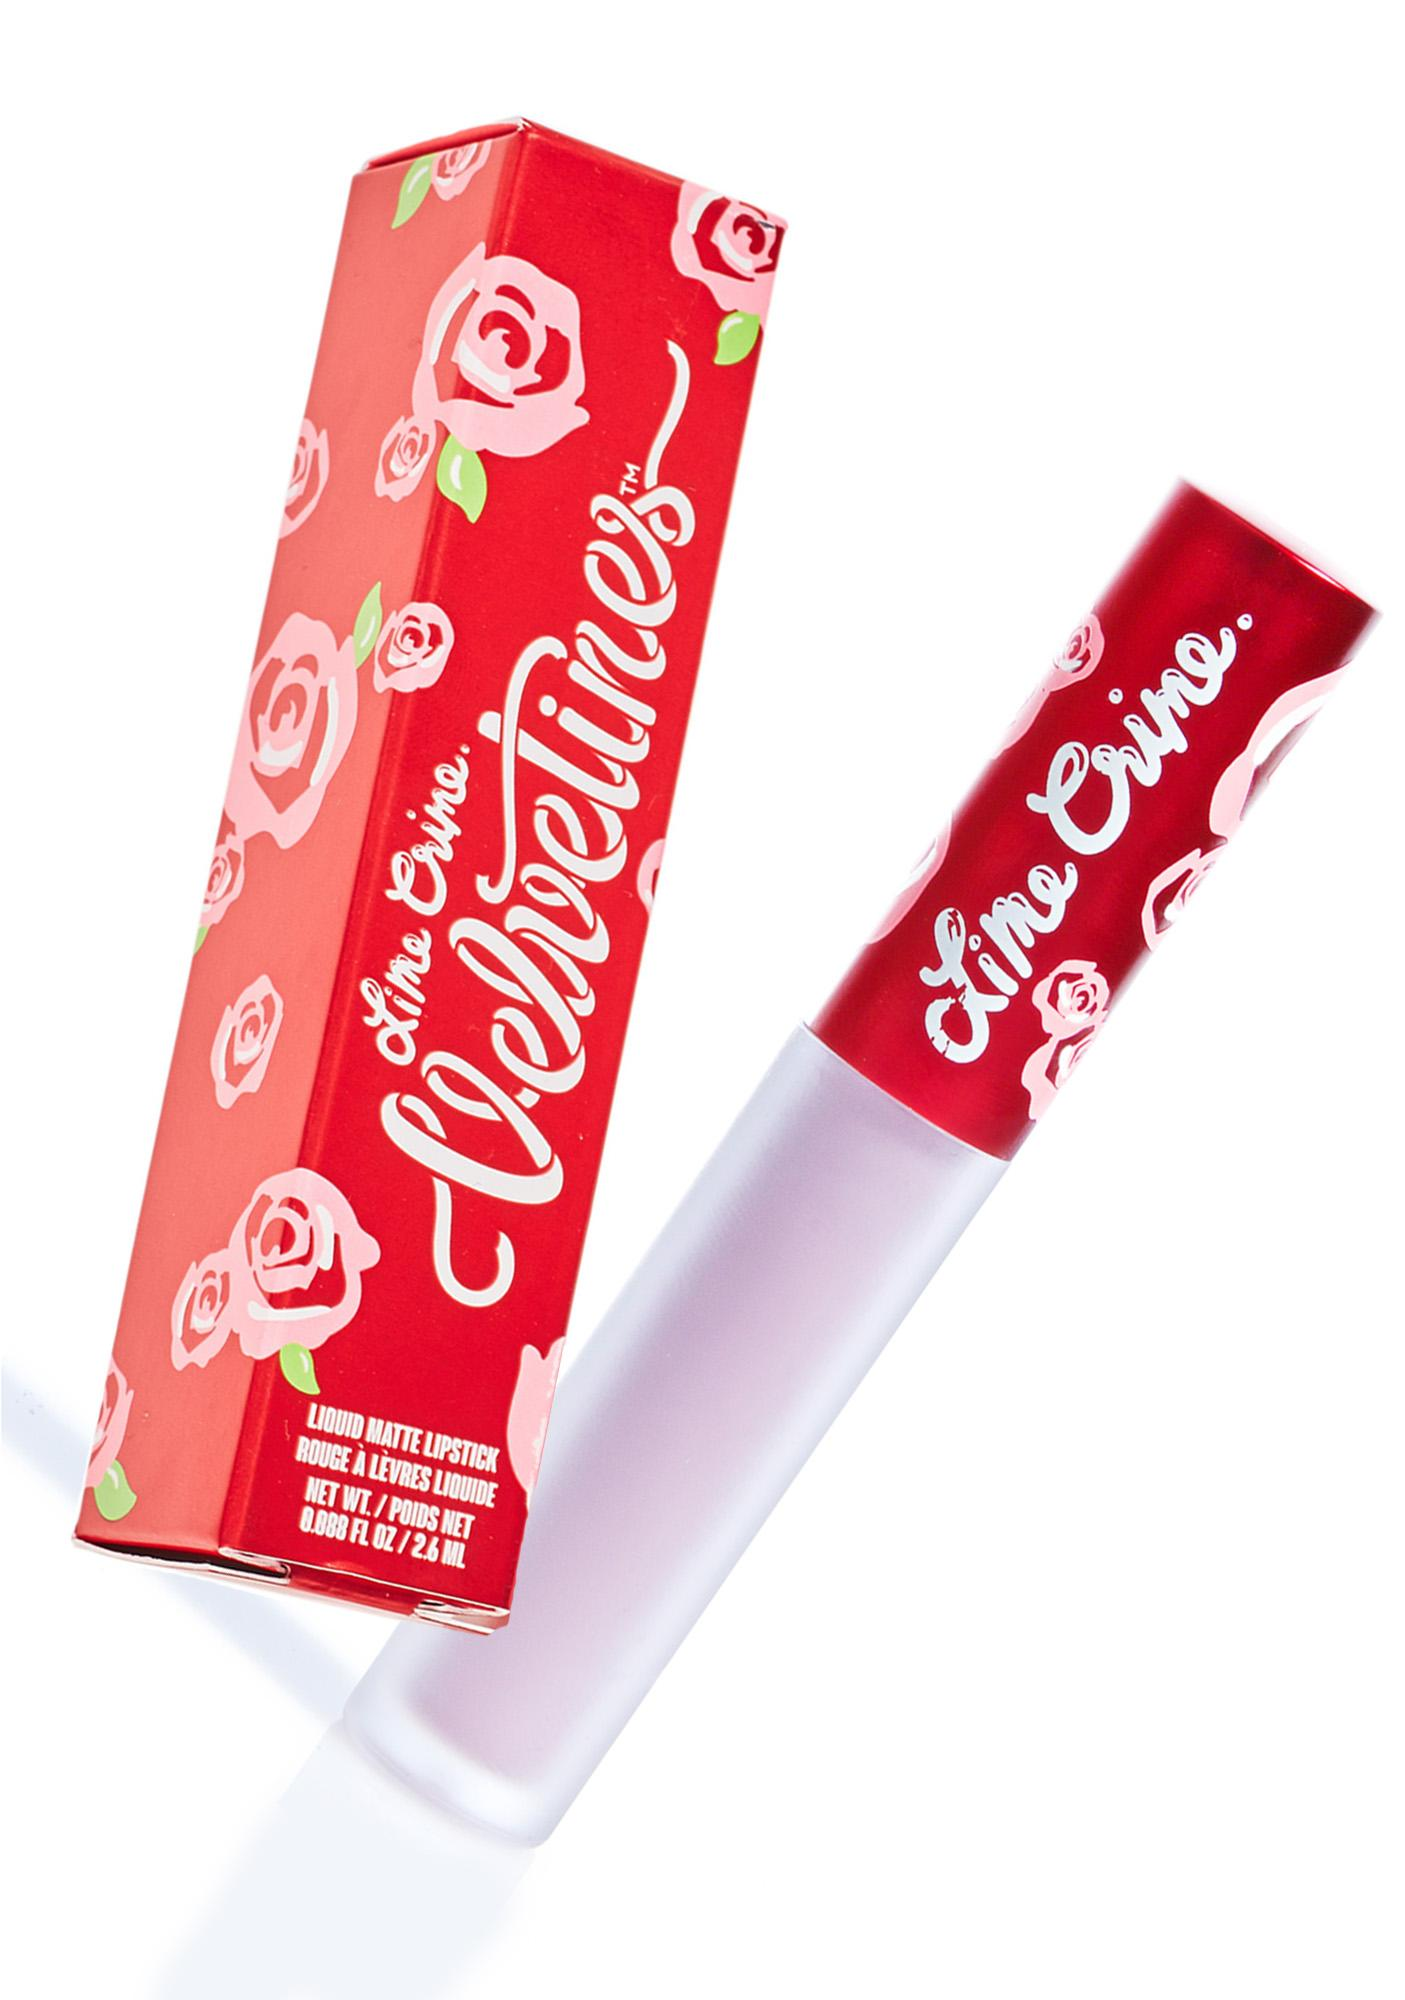 Lime Crime Moonstone Velvetine Liquid Lipstick